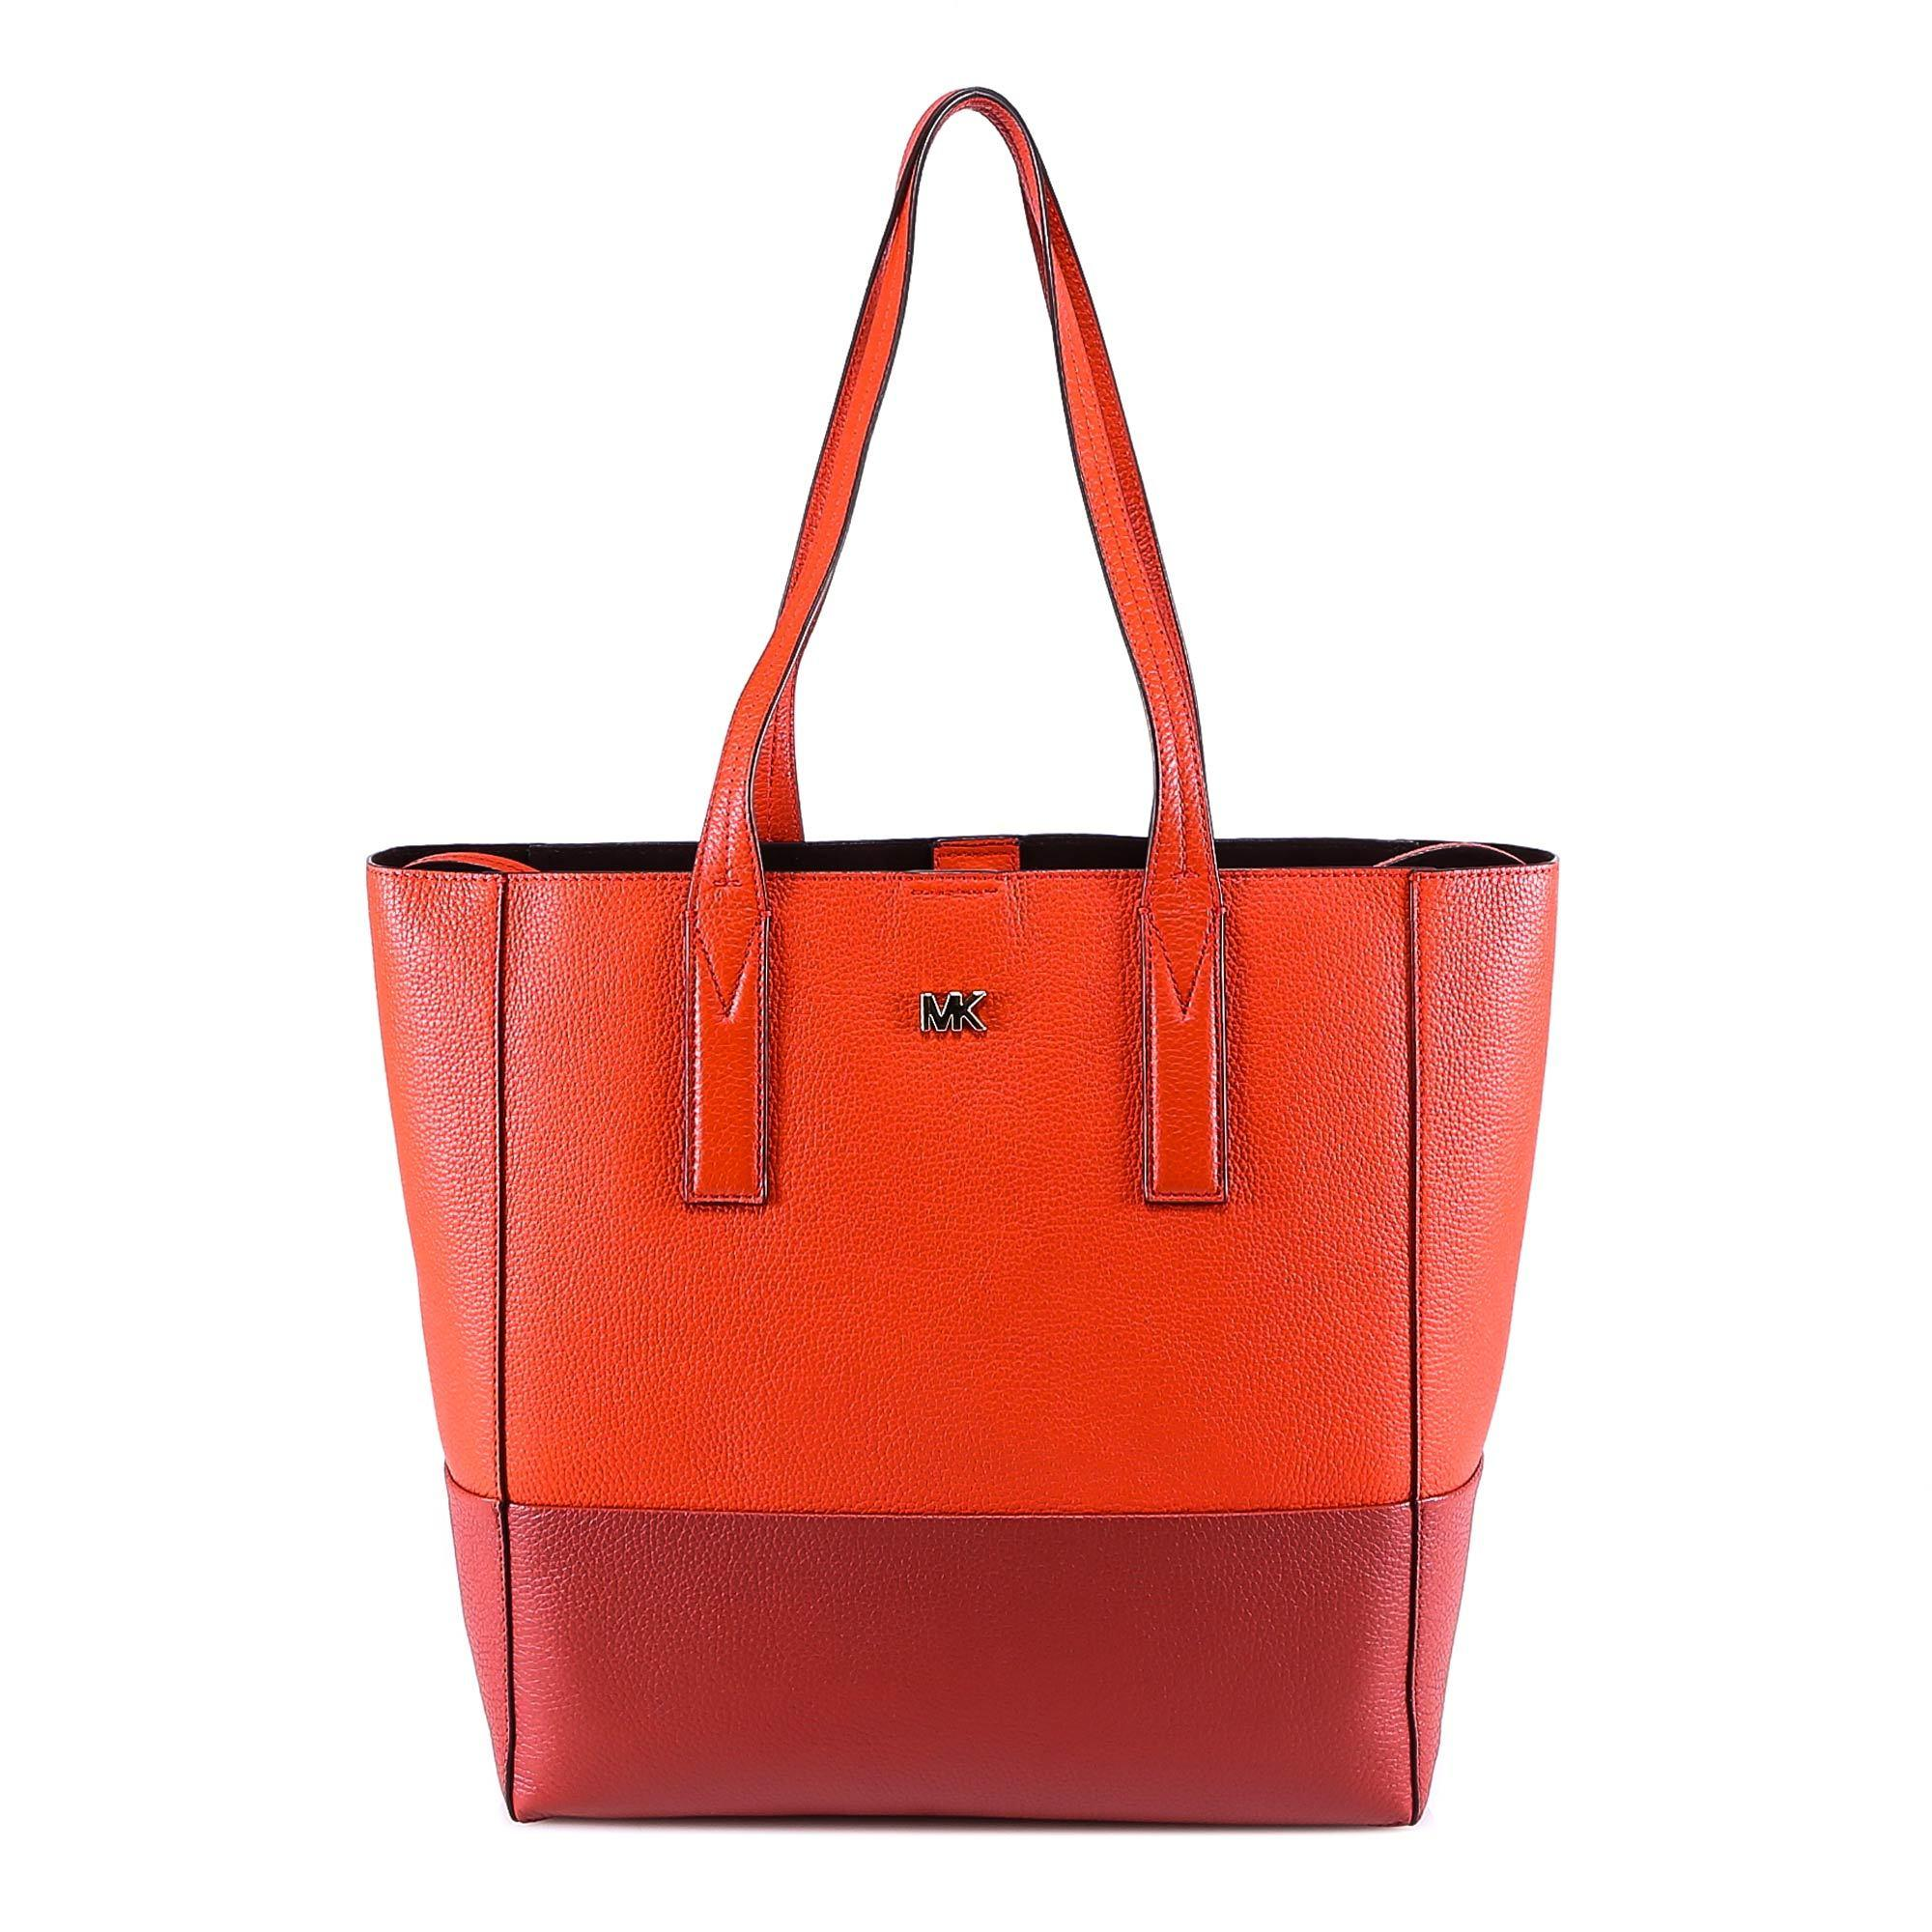 28c48a41e9508 Lyst - MICHAEL Michael Kors Large Junie Tote Bag in Red